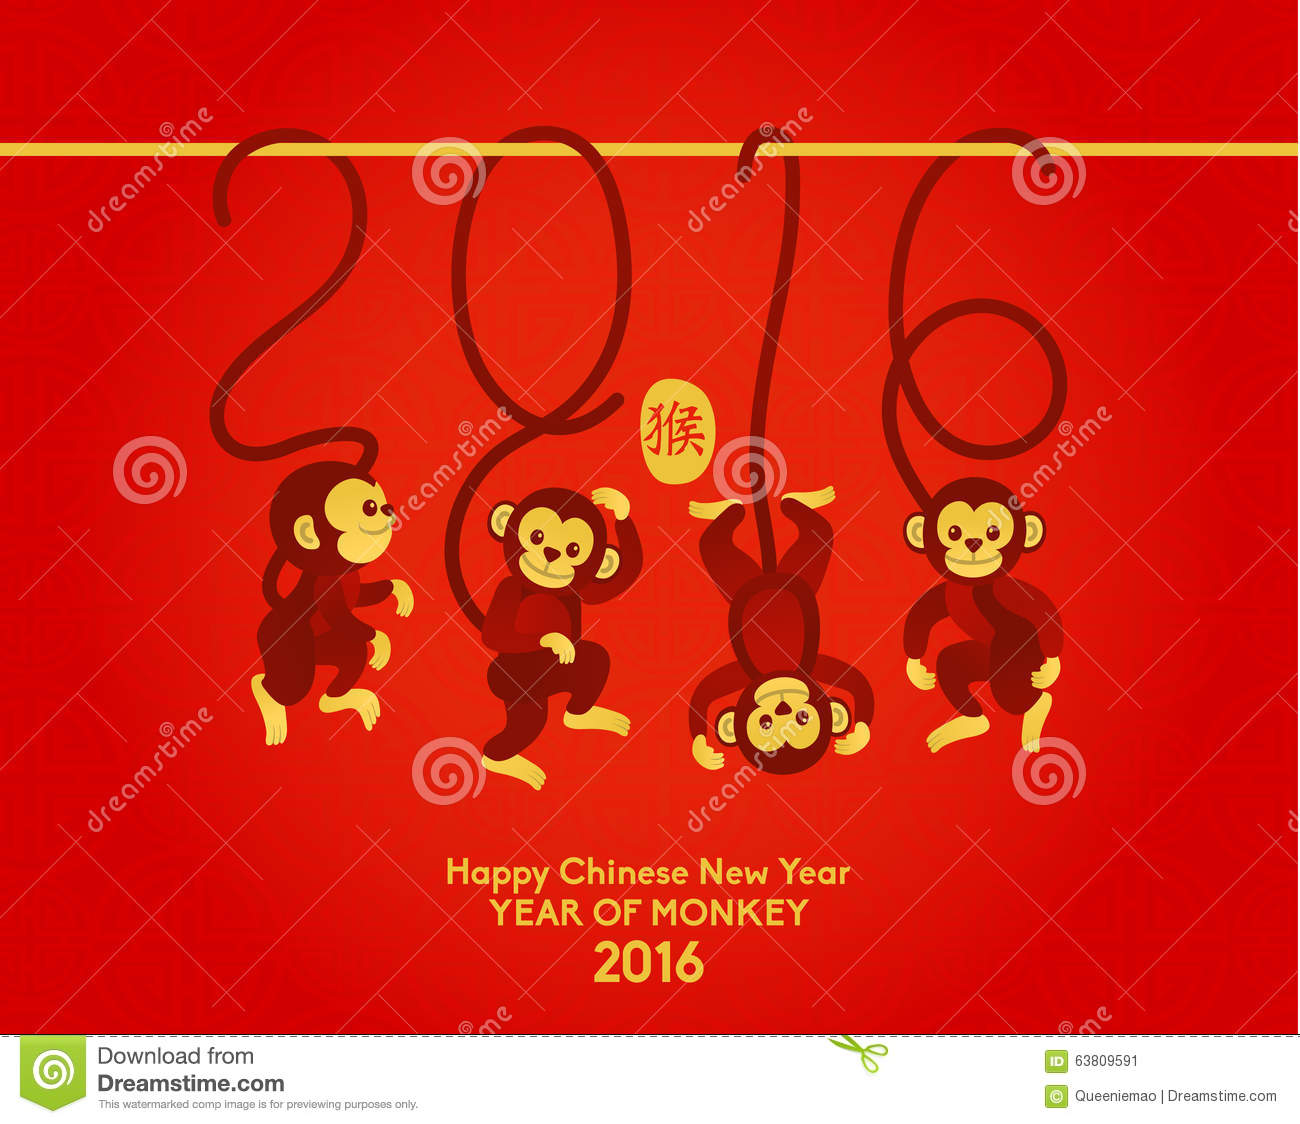 Happy Chinese New Year 2016 Year Of Monkey Stock Vector - Image ...